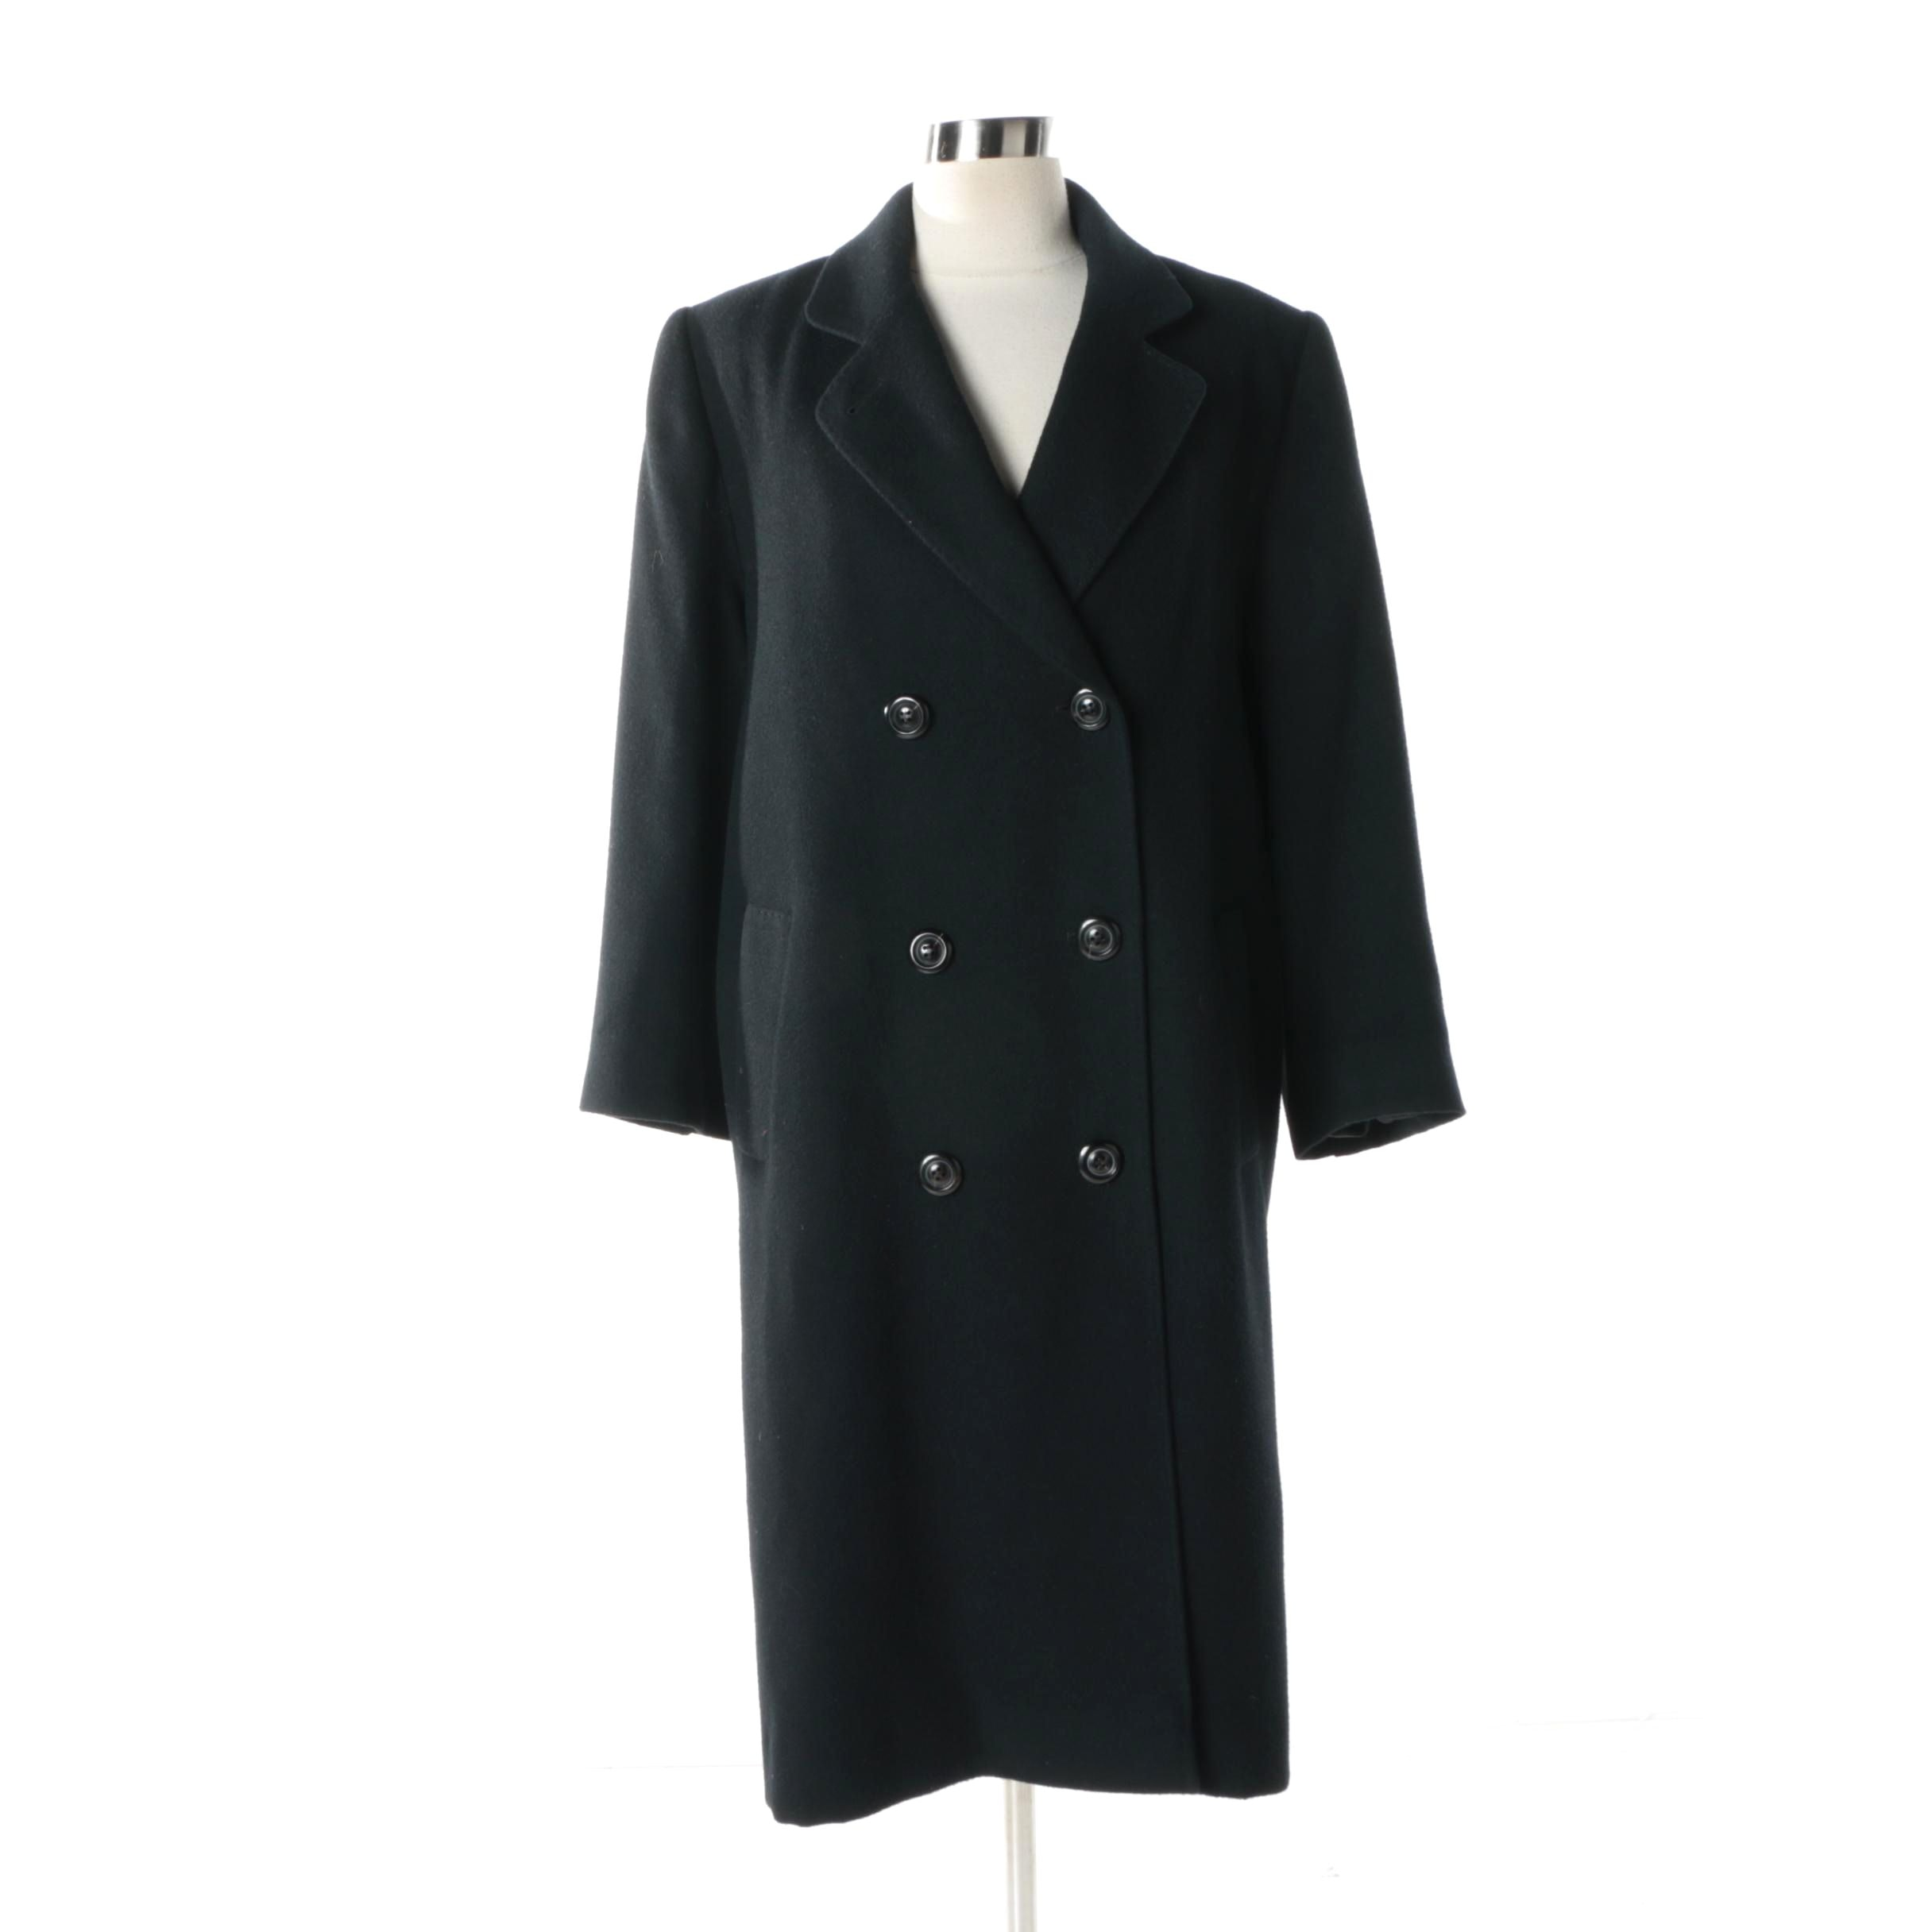 Vintage Fleurette Black Dyed Camel Hair Coat